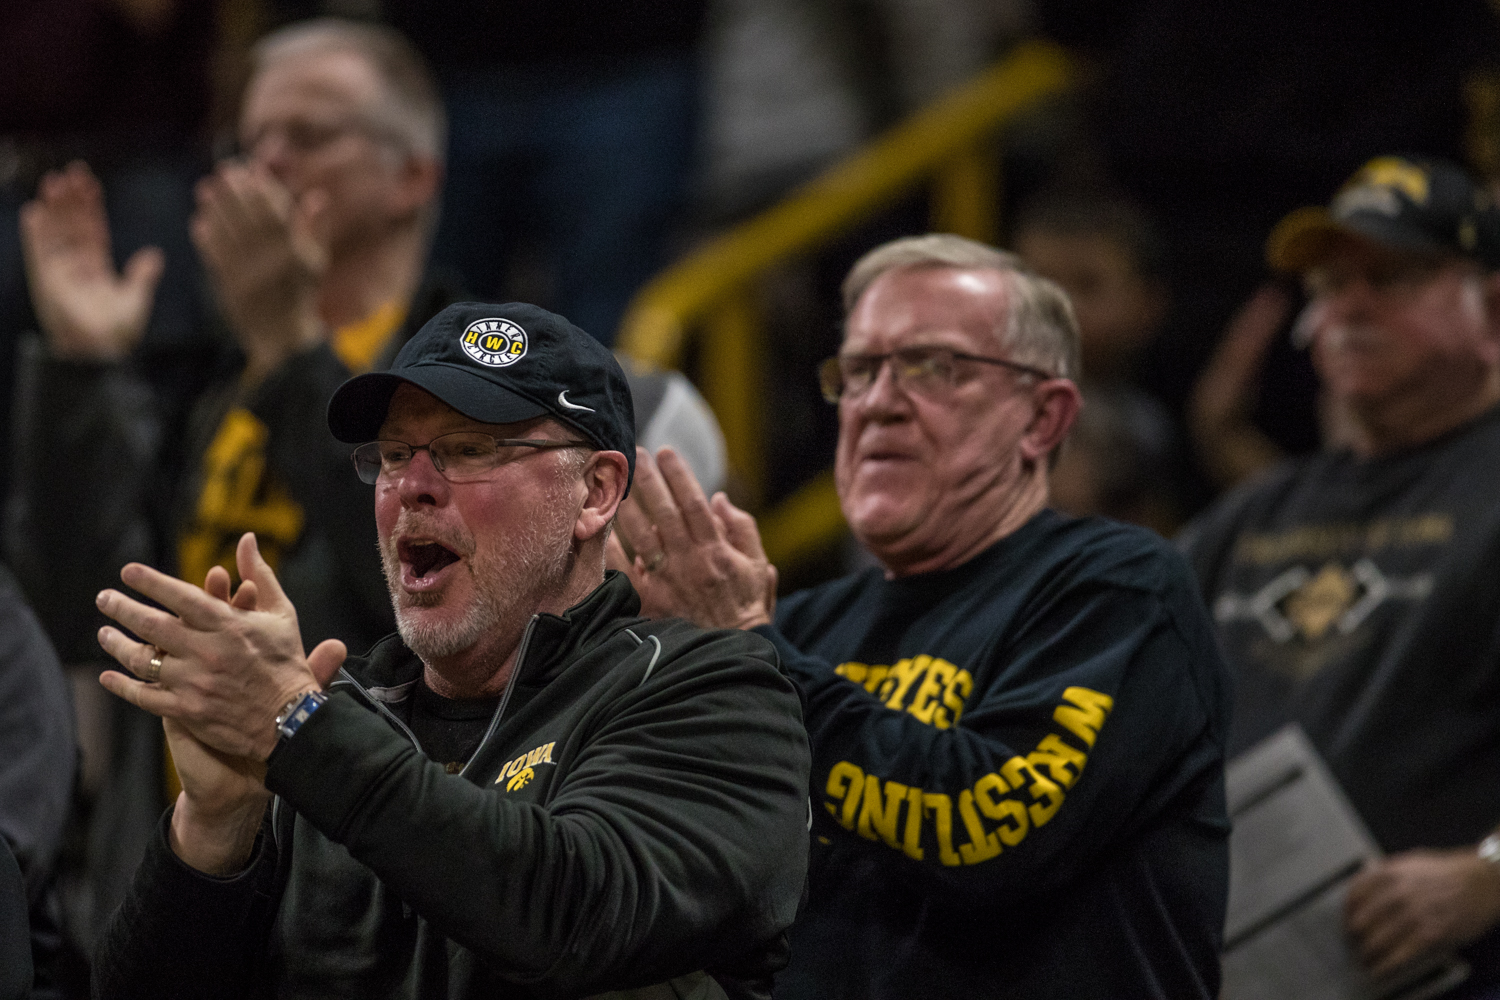 Fans+cheer+during+a+wrestling+match+between+Iowa+and+Indiana+at+Carver-Hawkeye+Arena+on+Friday%2C+February+15%2C+2019.+The+Hawkeyes%2C+celebrating+senior+night%2C+defeated+the+Hoosiers+37-9.